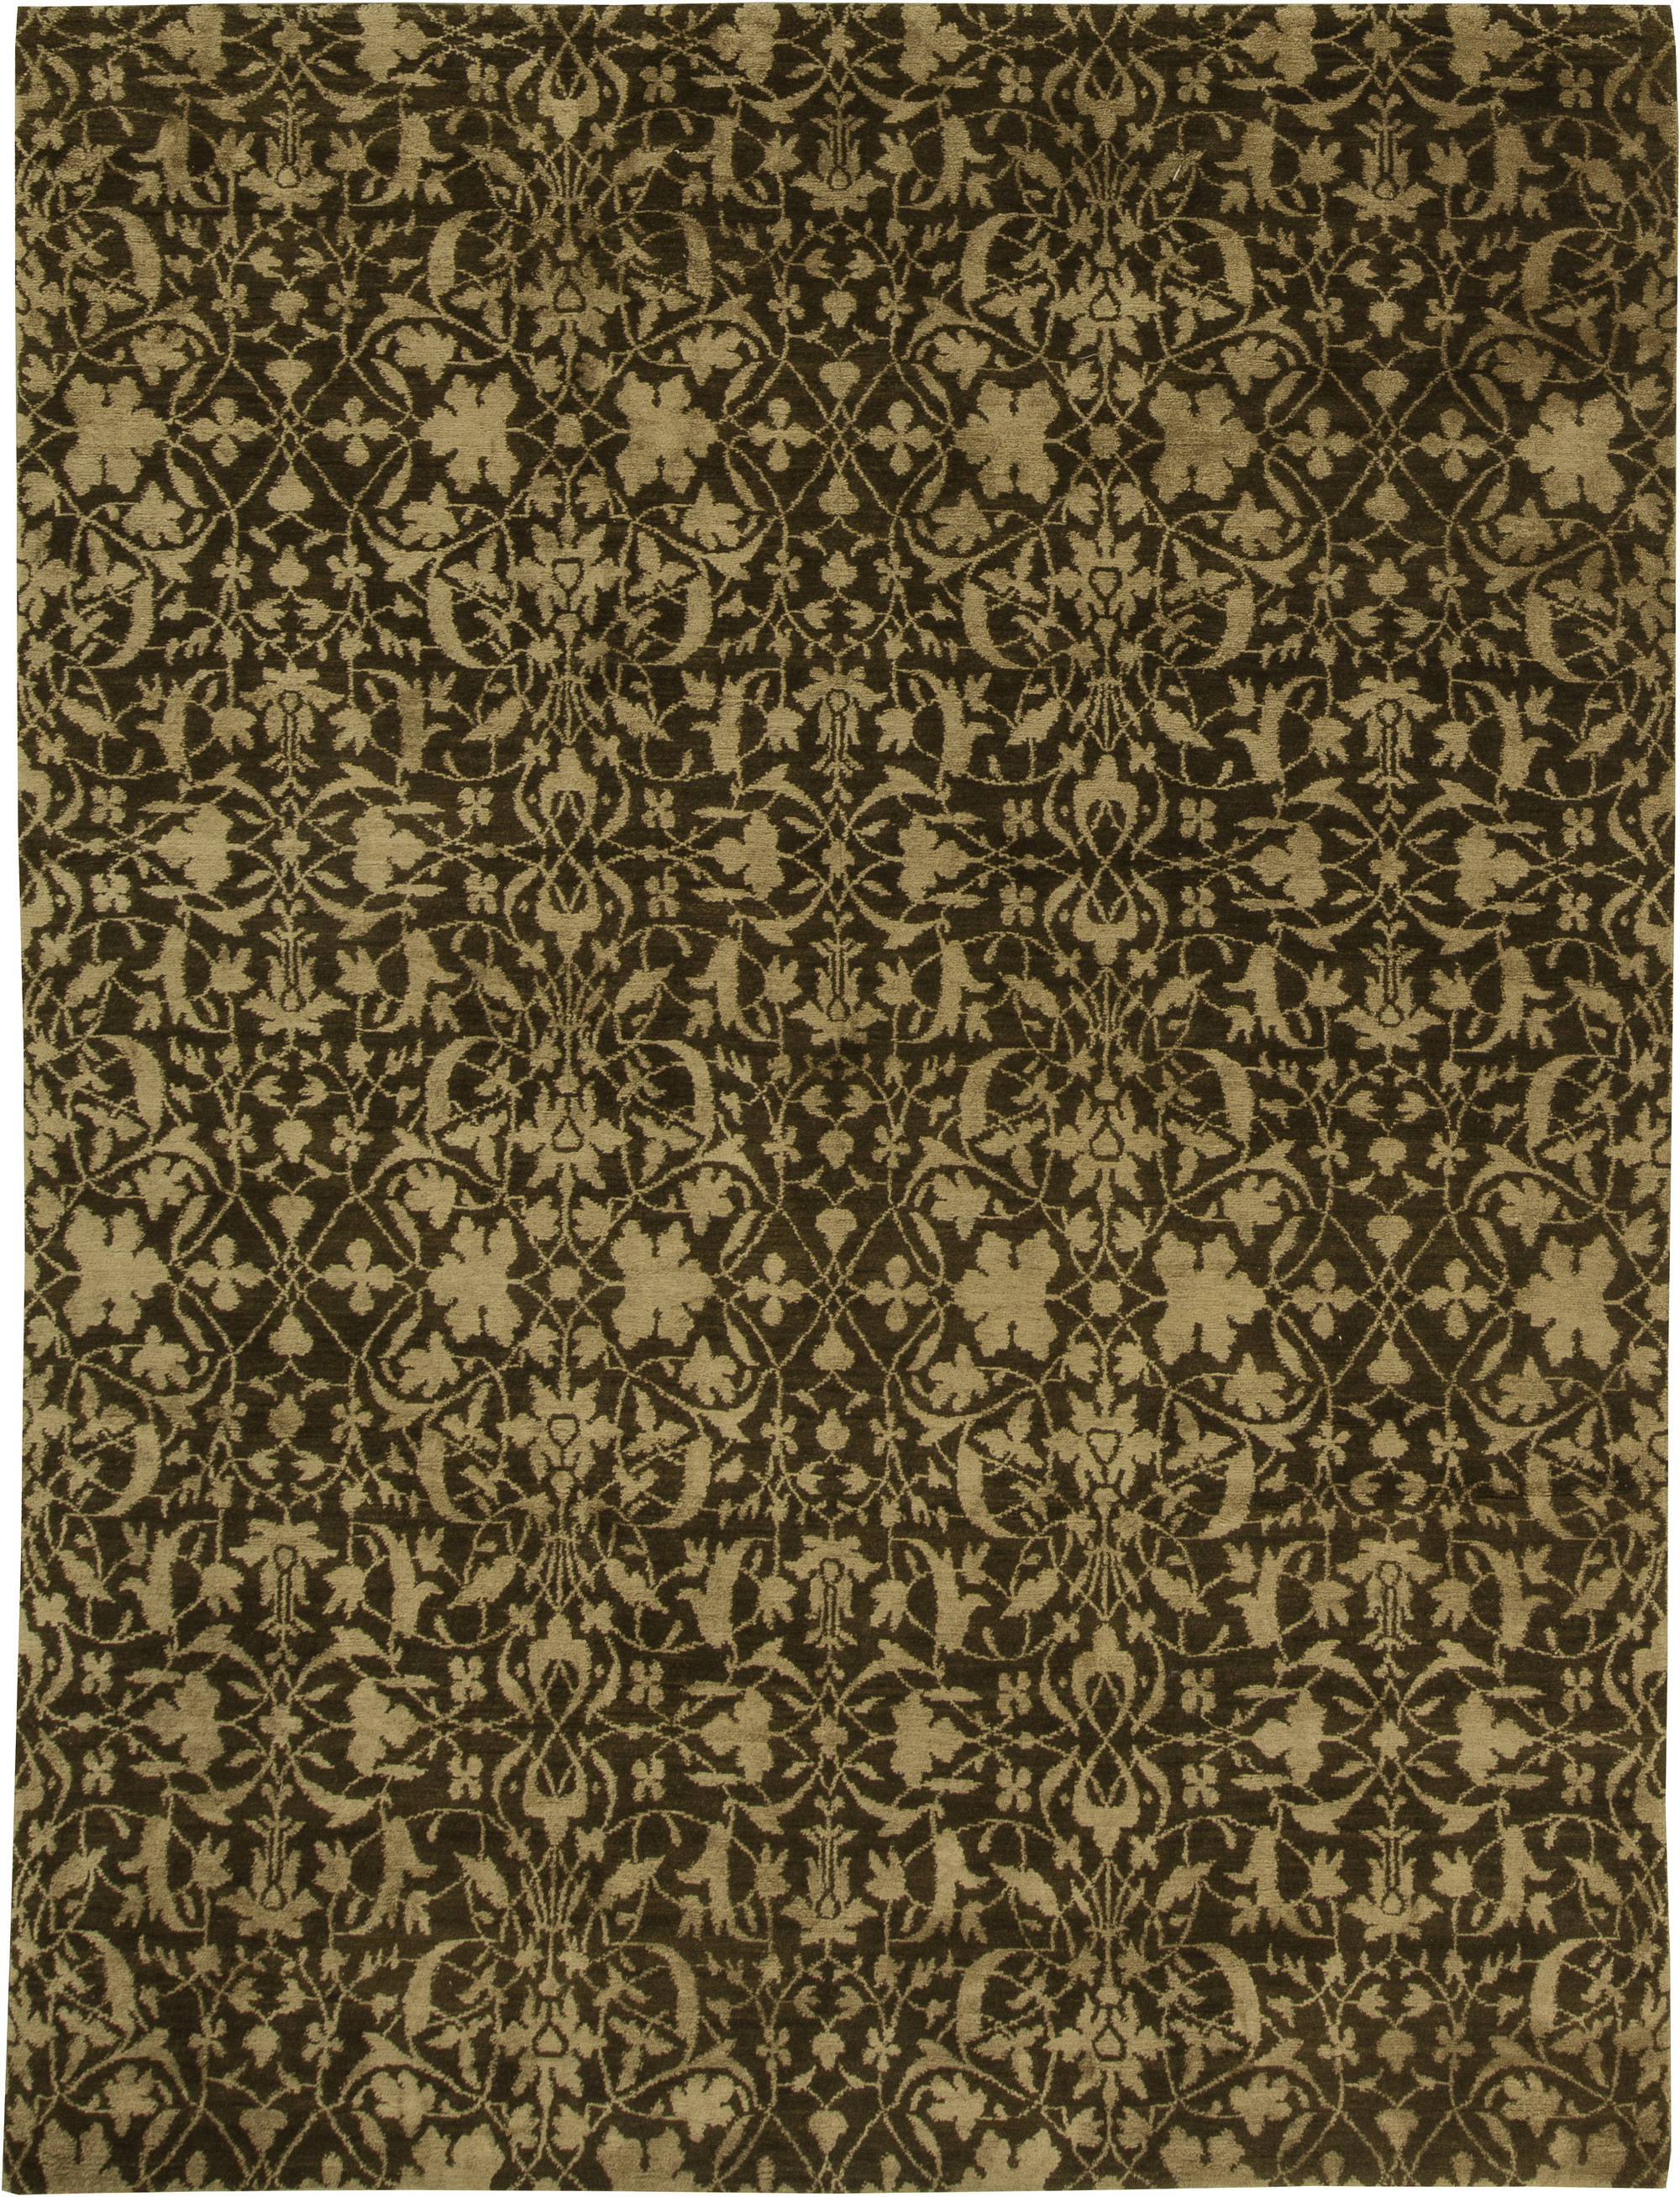 cheap floral most for improvement area floor cream carpet rugs prime rug gray grey light shag photos idea soft home red white best charcoal moroccan covering of and brown